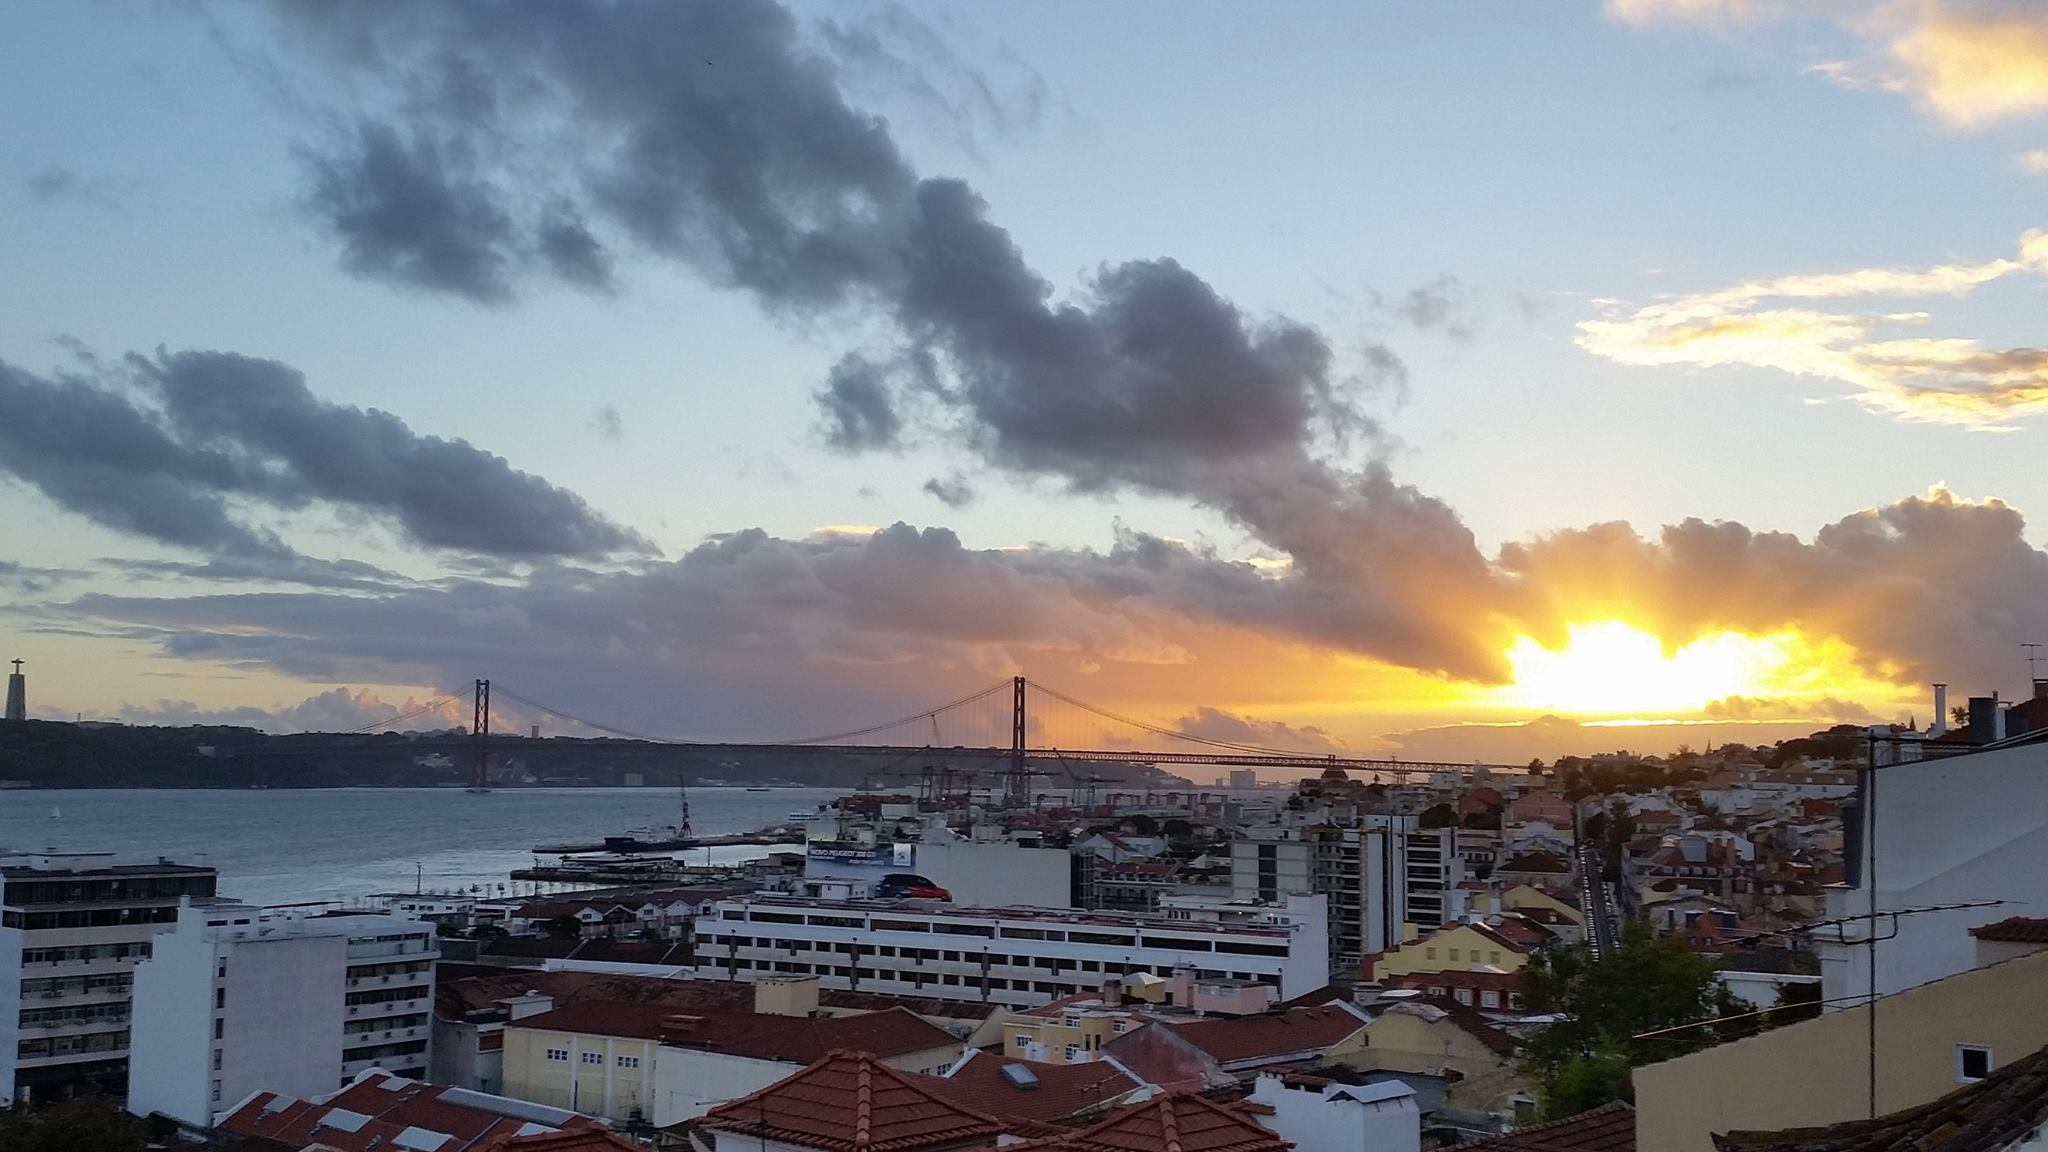 12119990 905921962828486 2120751042161518095 o 1024x576 - 10+ Best Rooftop Bars To Catch Lisbon's Mesmerizing Sunsets